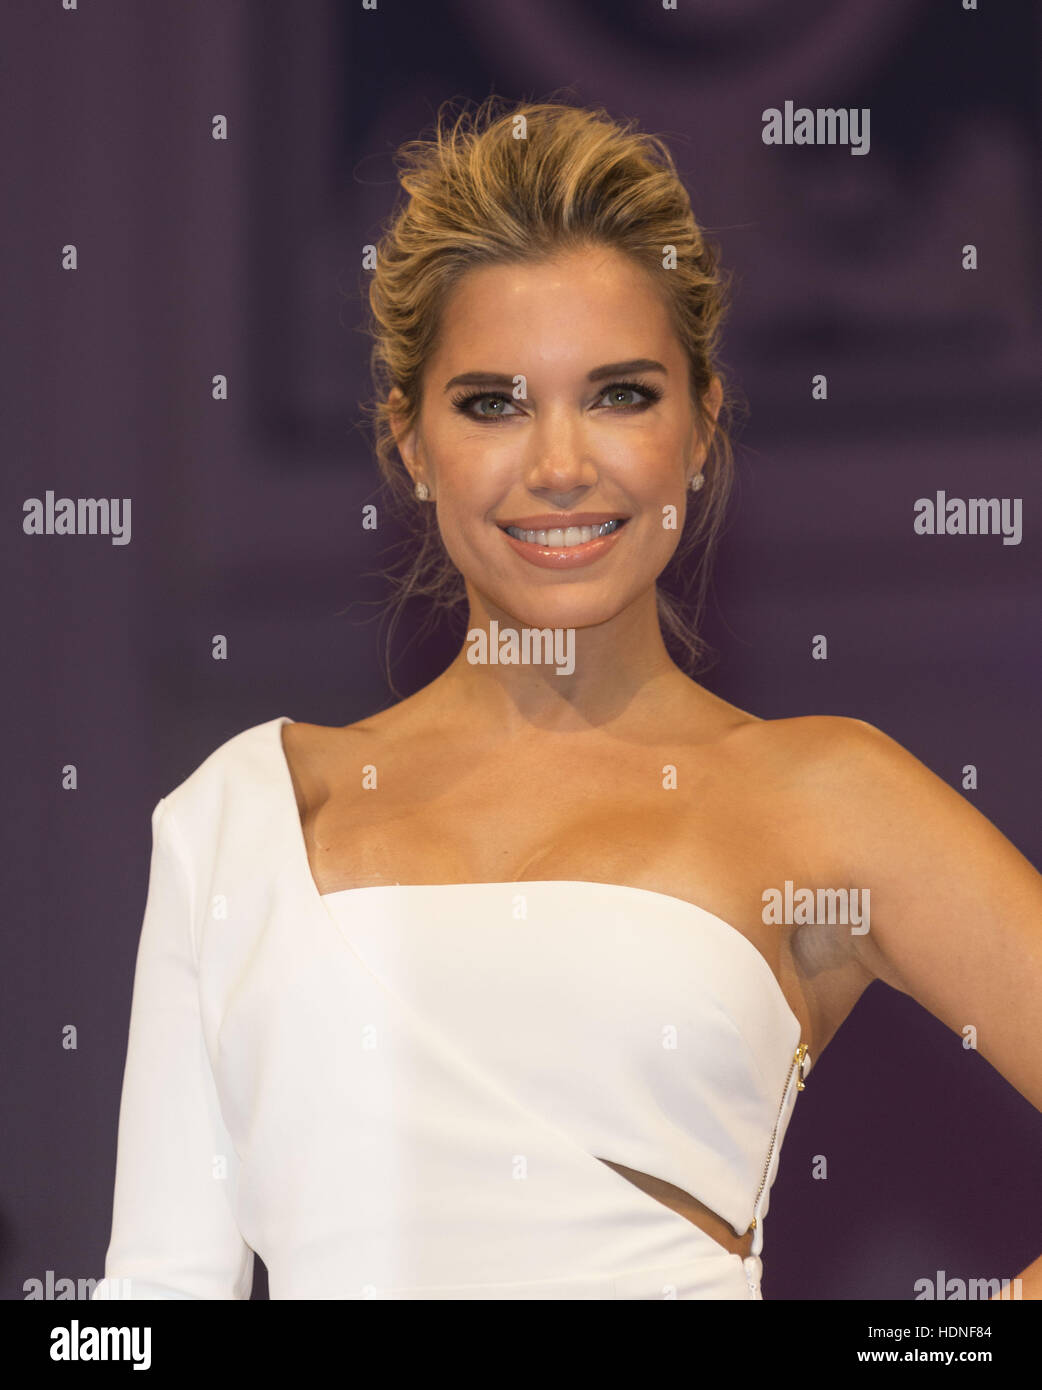 Young Sylvie Meis nudes (26 photos), Topless, Hot, Boobs, braless 2019